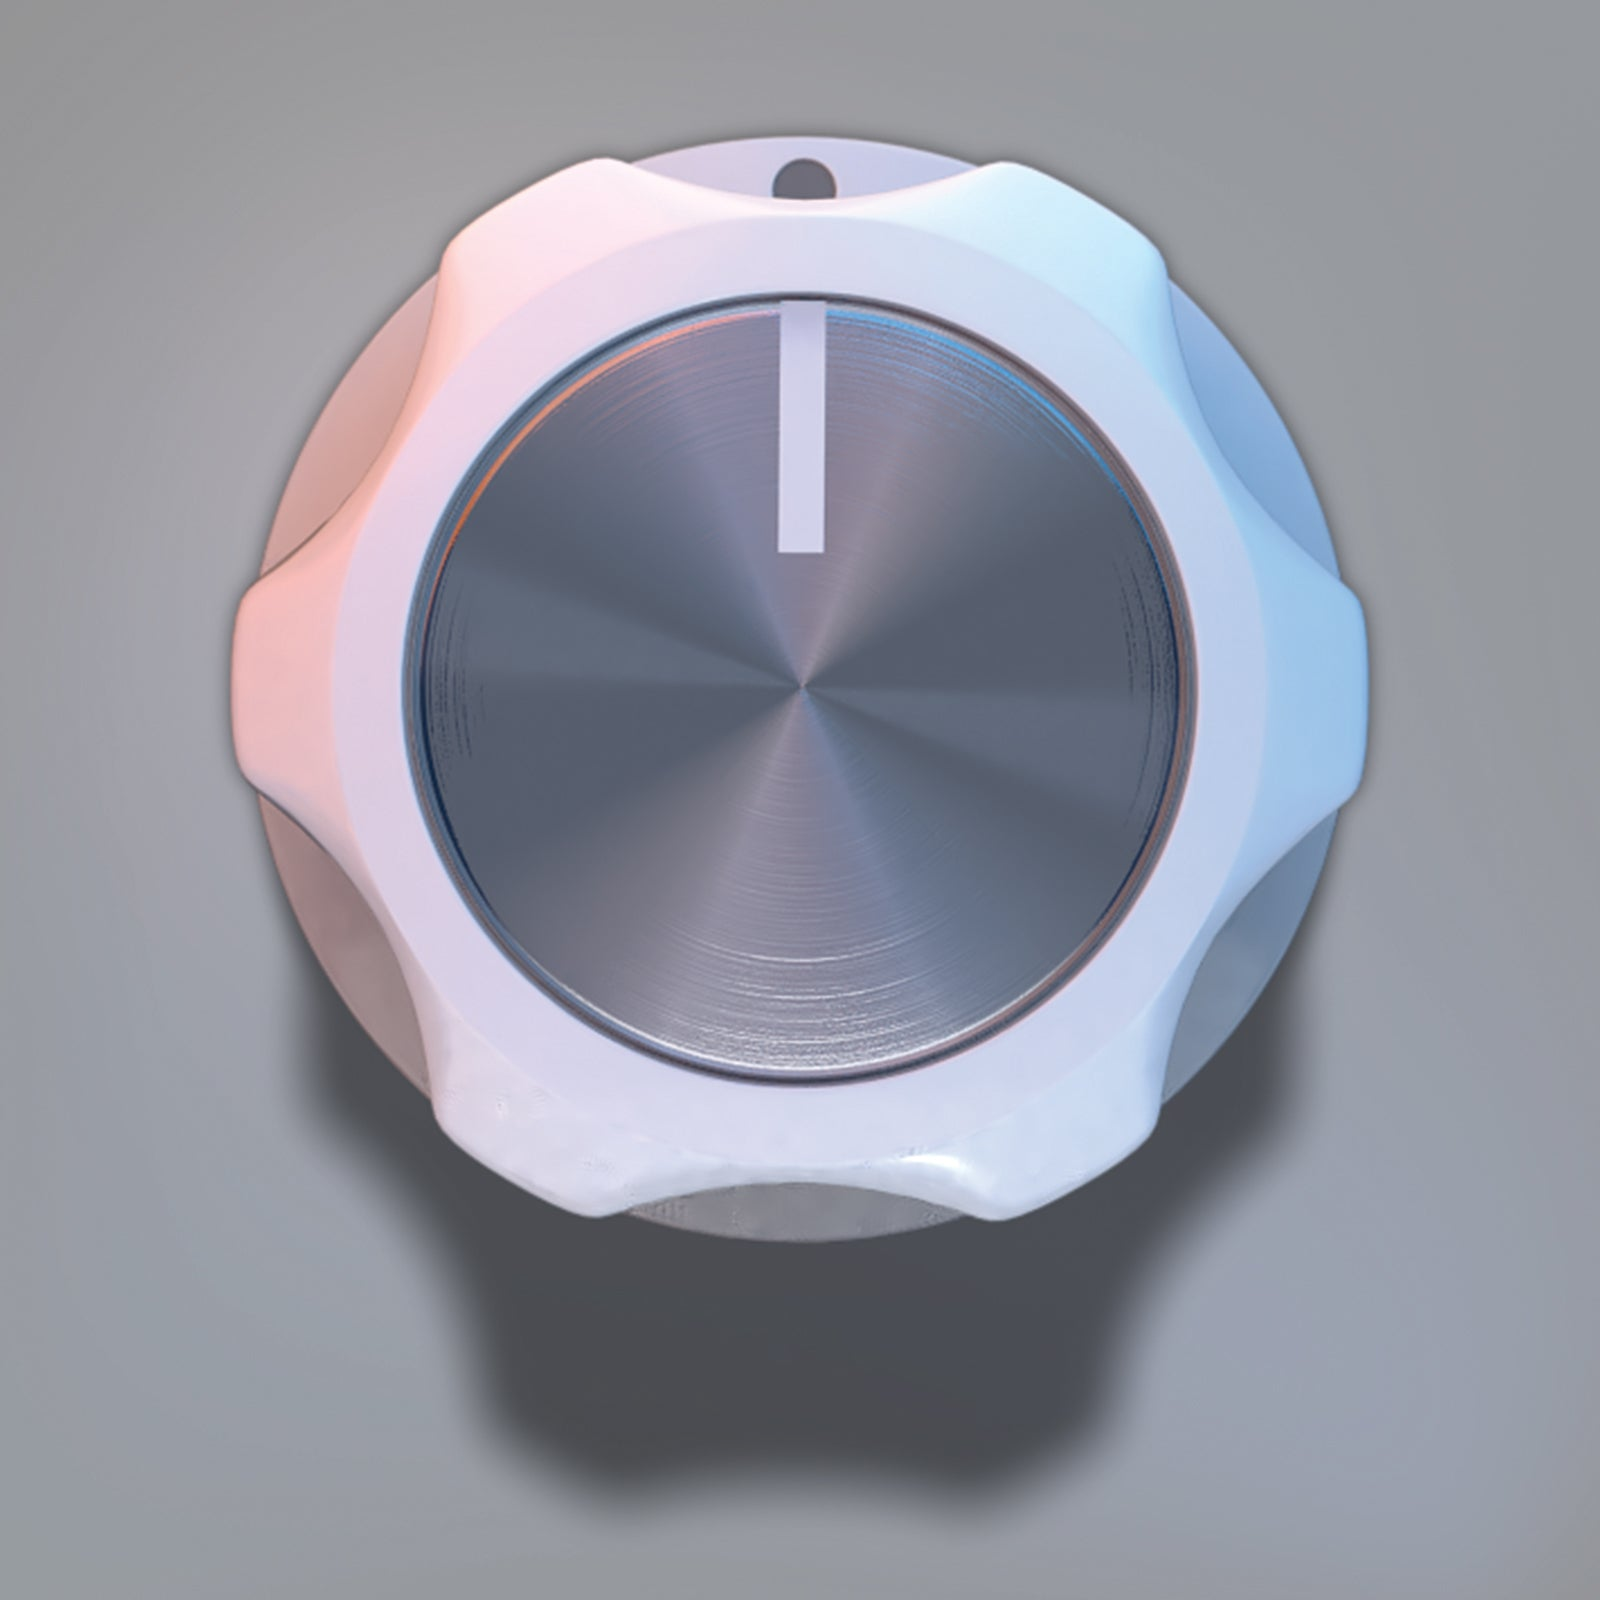 Combined rotary knob 3D model